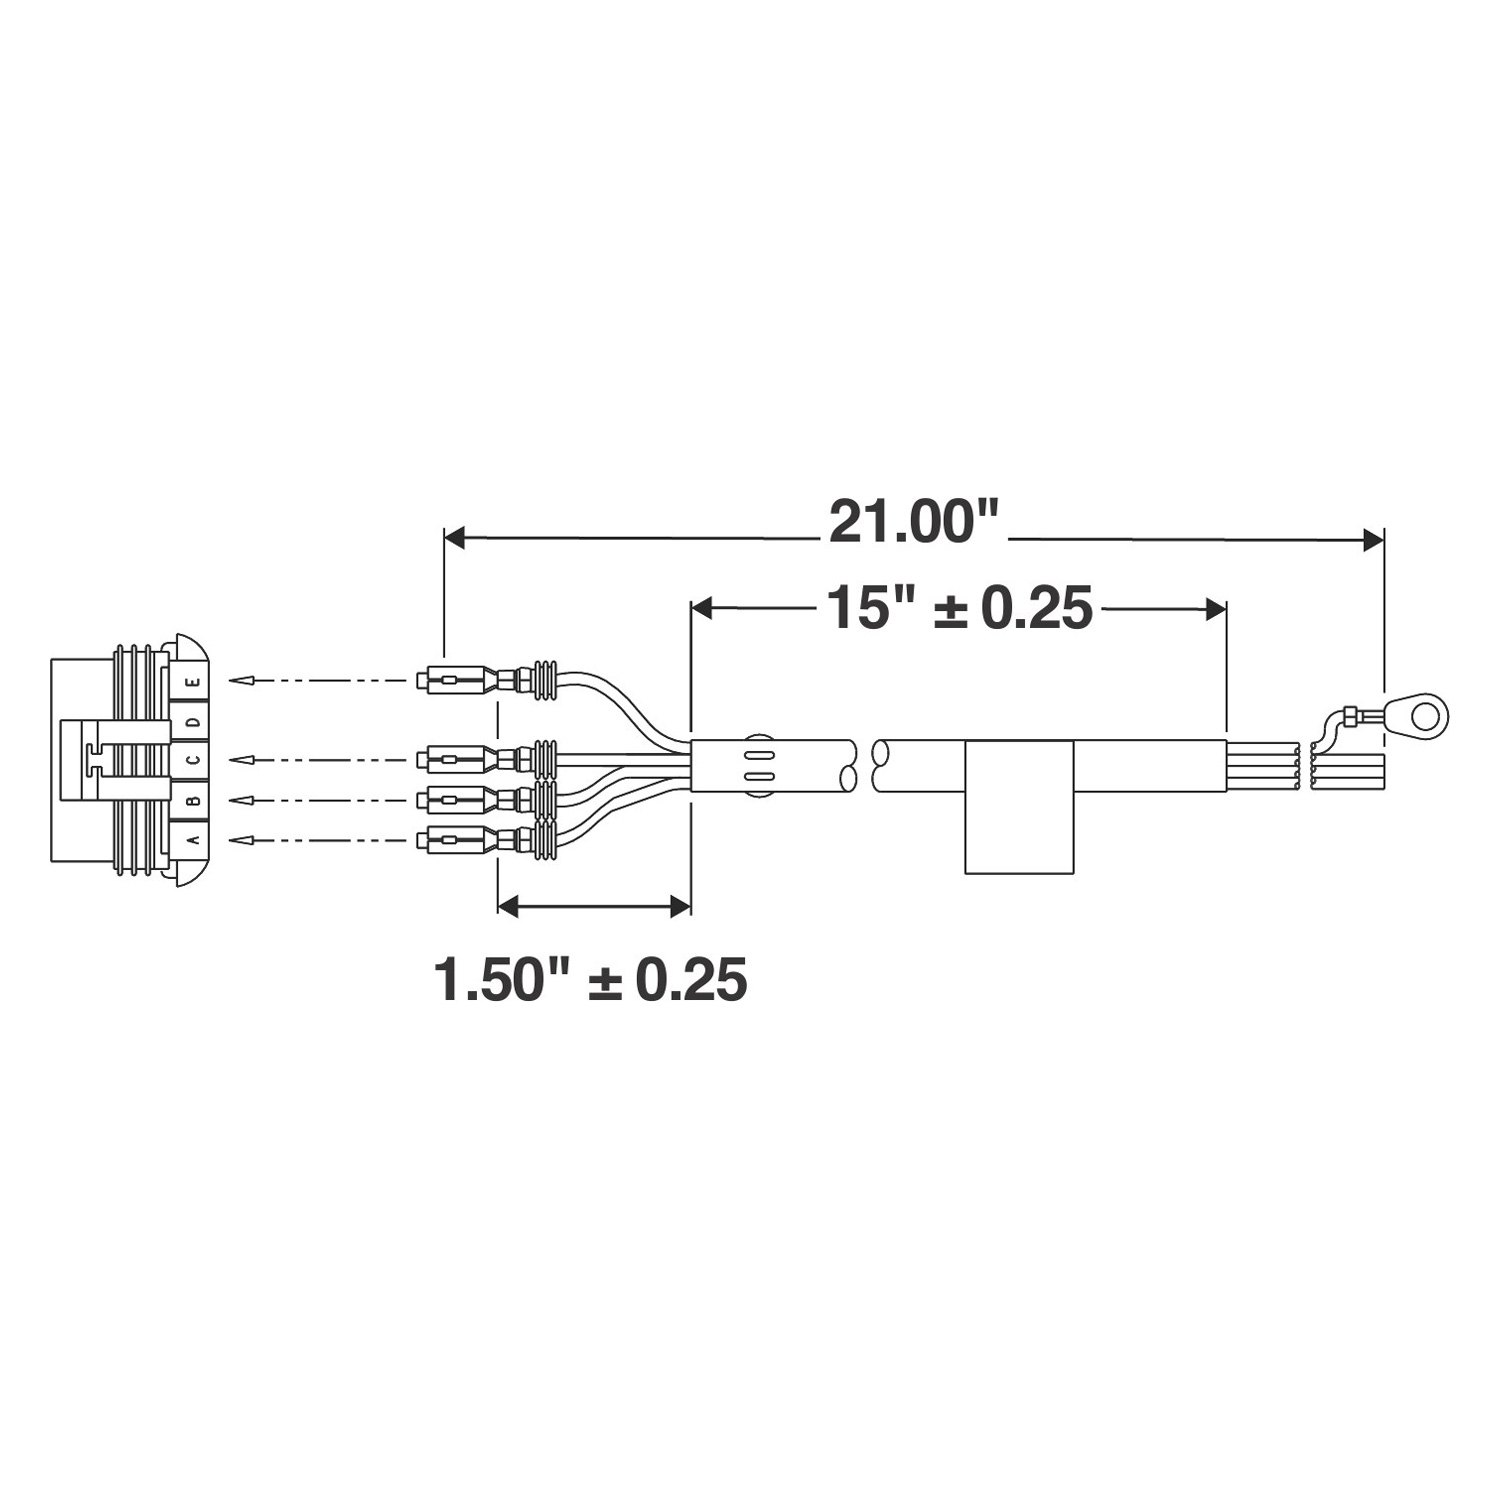 truck lite 97300 wiring diagram 2010 ford f150 stereo 9464 signal stat 21 quot 1 plug 4 wire connector